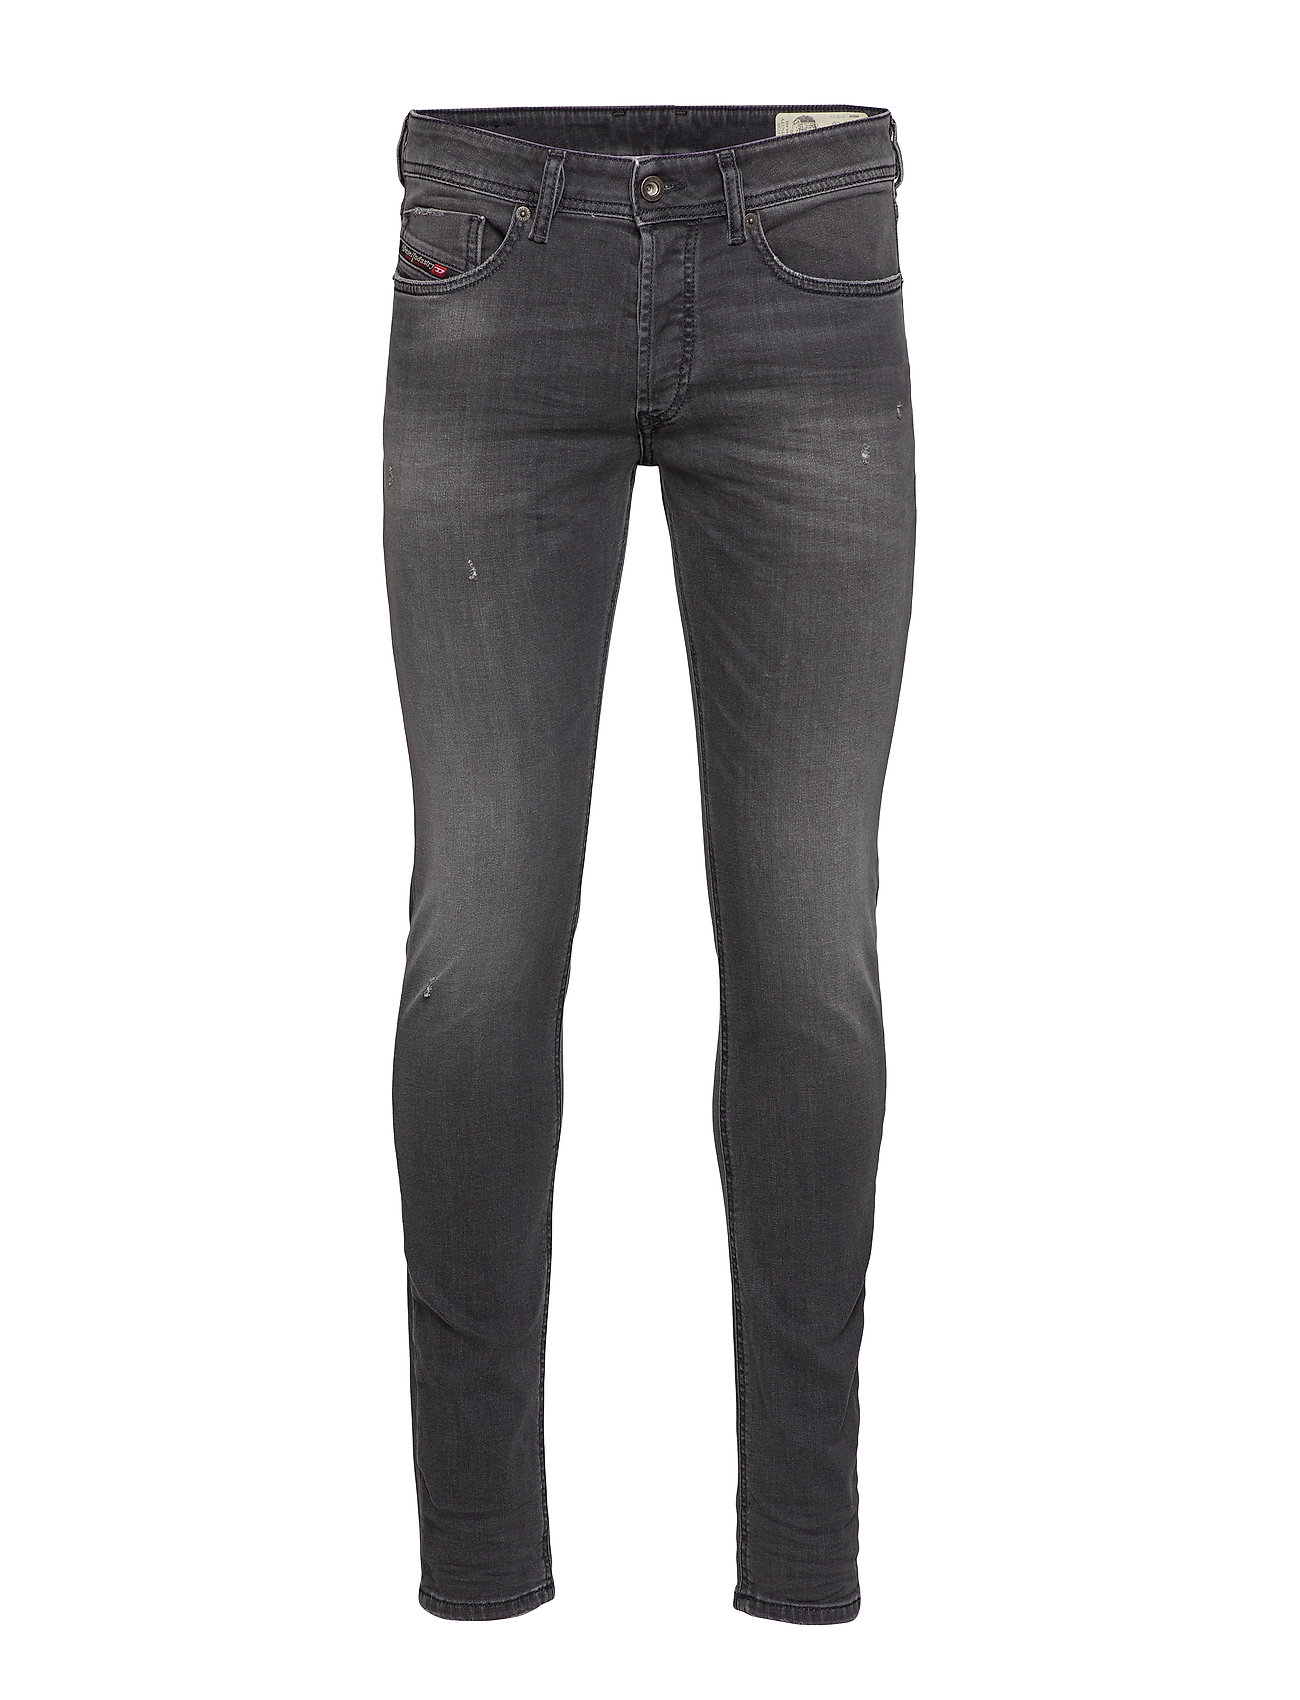 Diesel Men SLEENKER-X TROUSERS - BLACK/DENIM